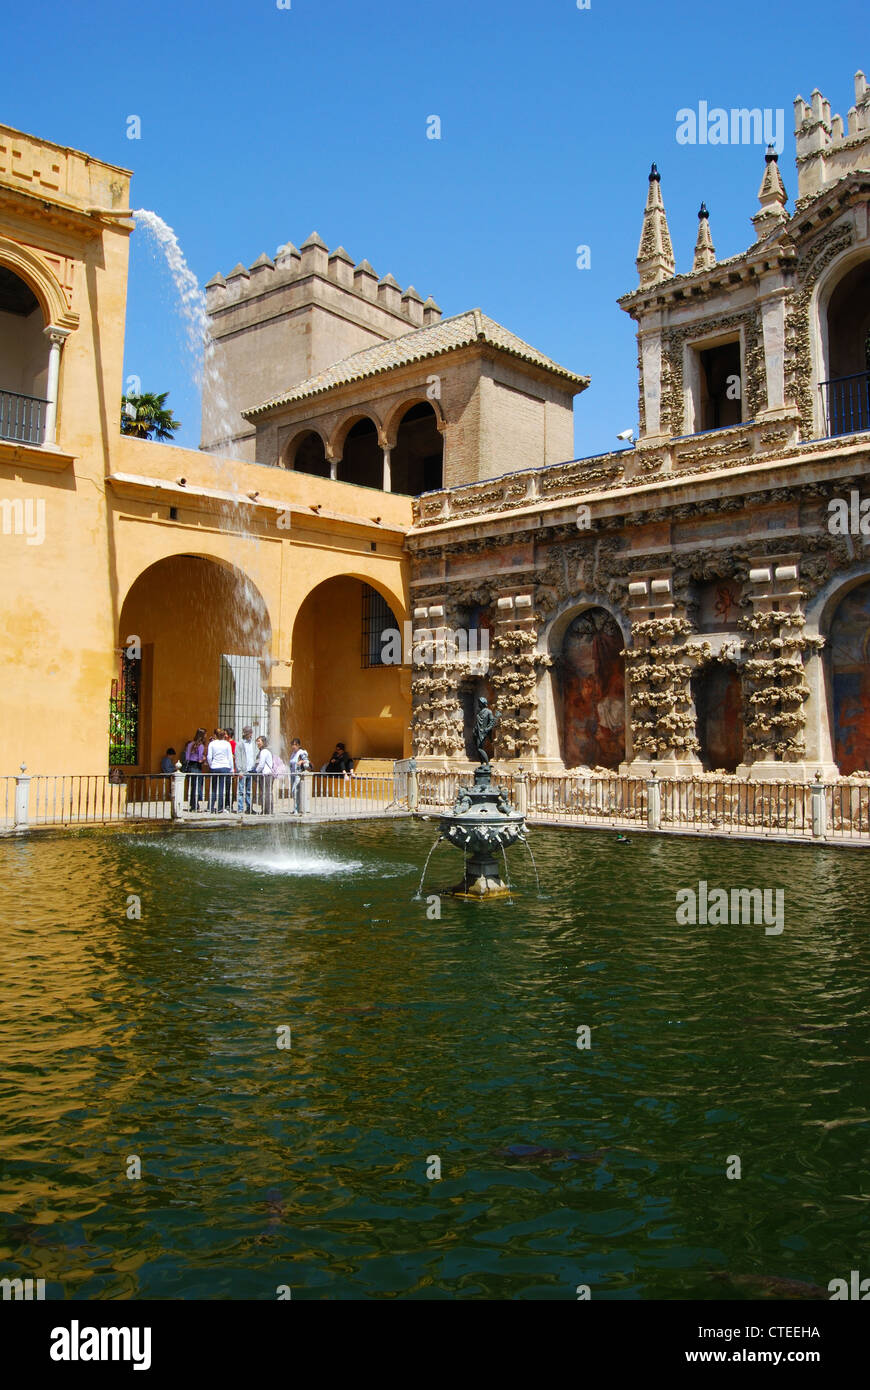 Novelty fountain and pool in gardens within the Castle of the Kings (Alcazar), Seville, Andalucia, Spain, Western - Stock Image